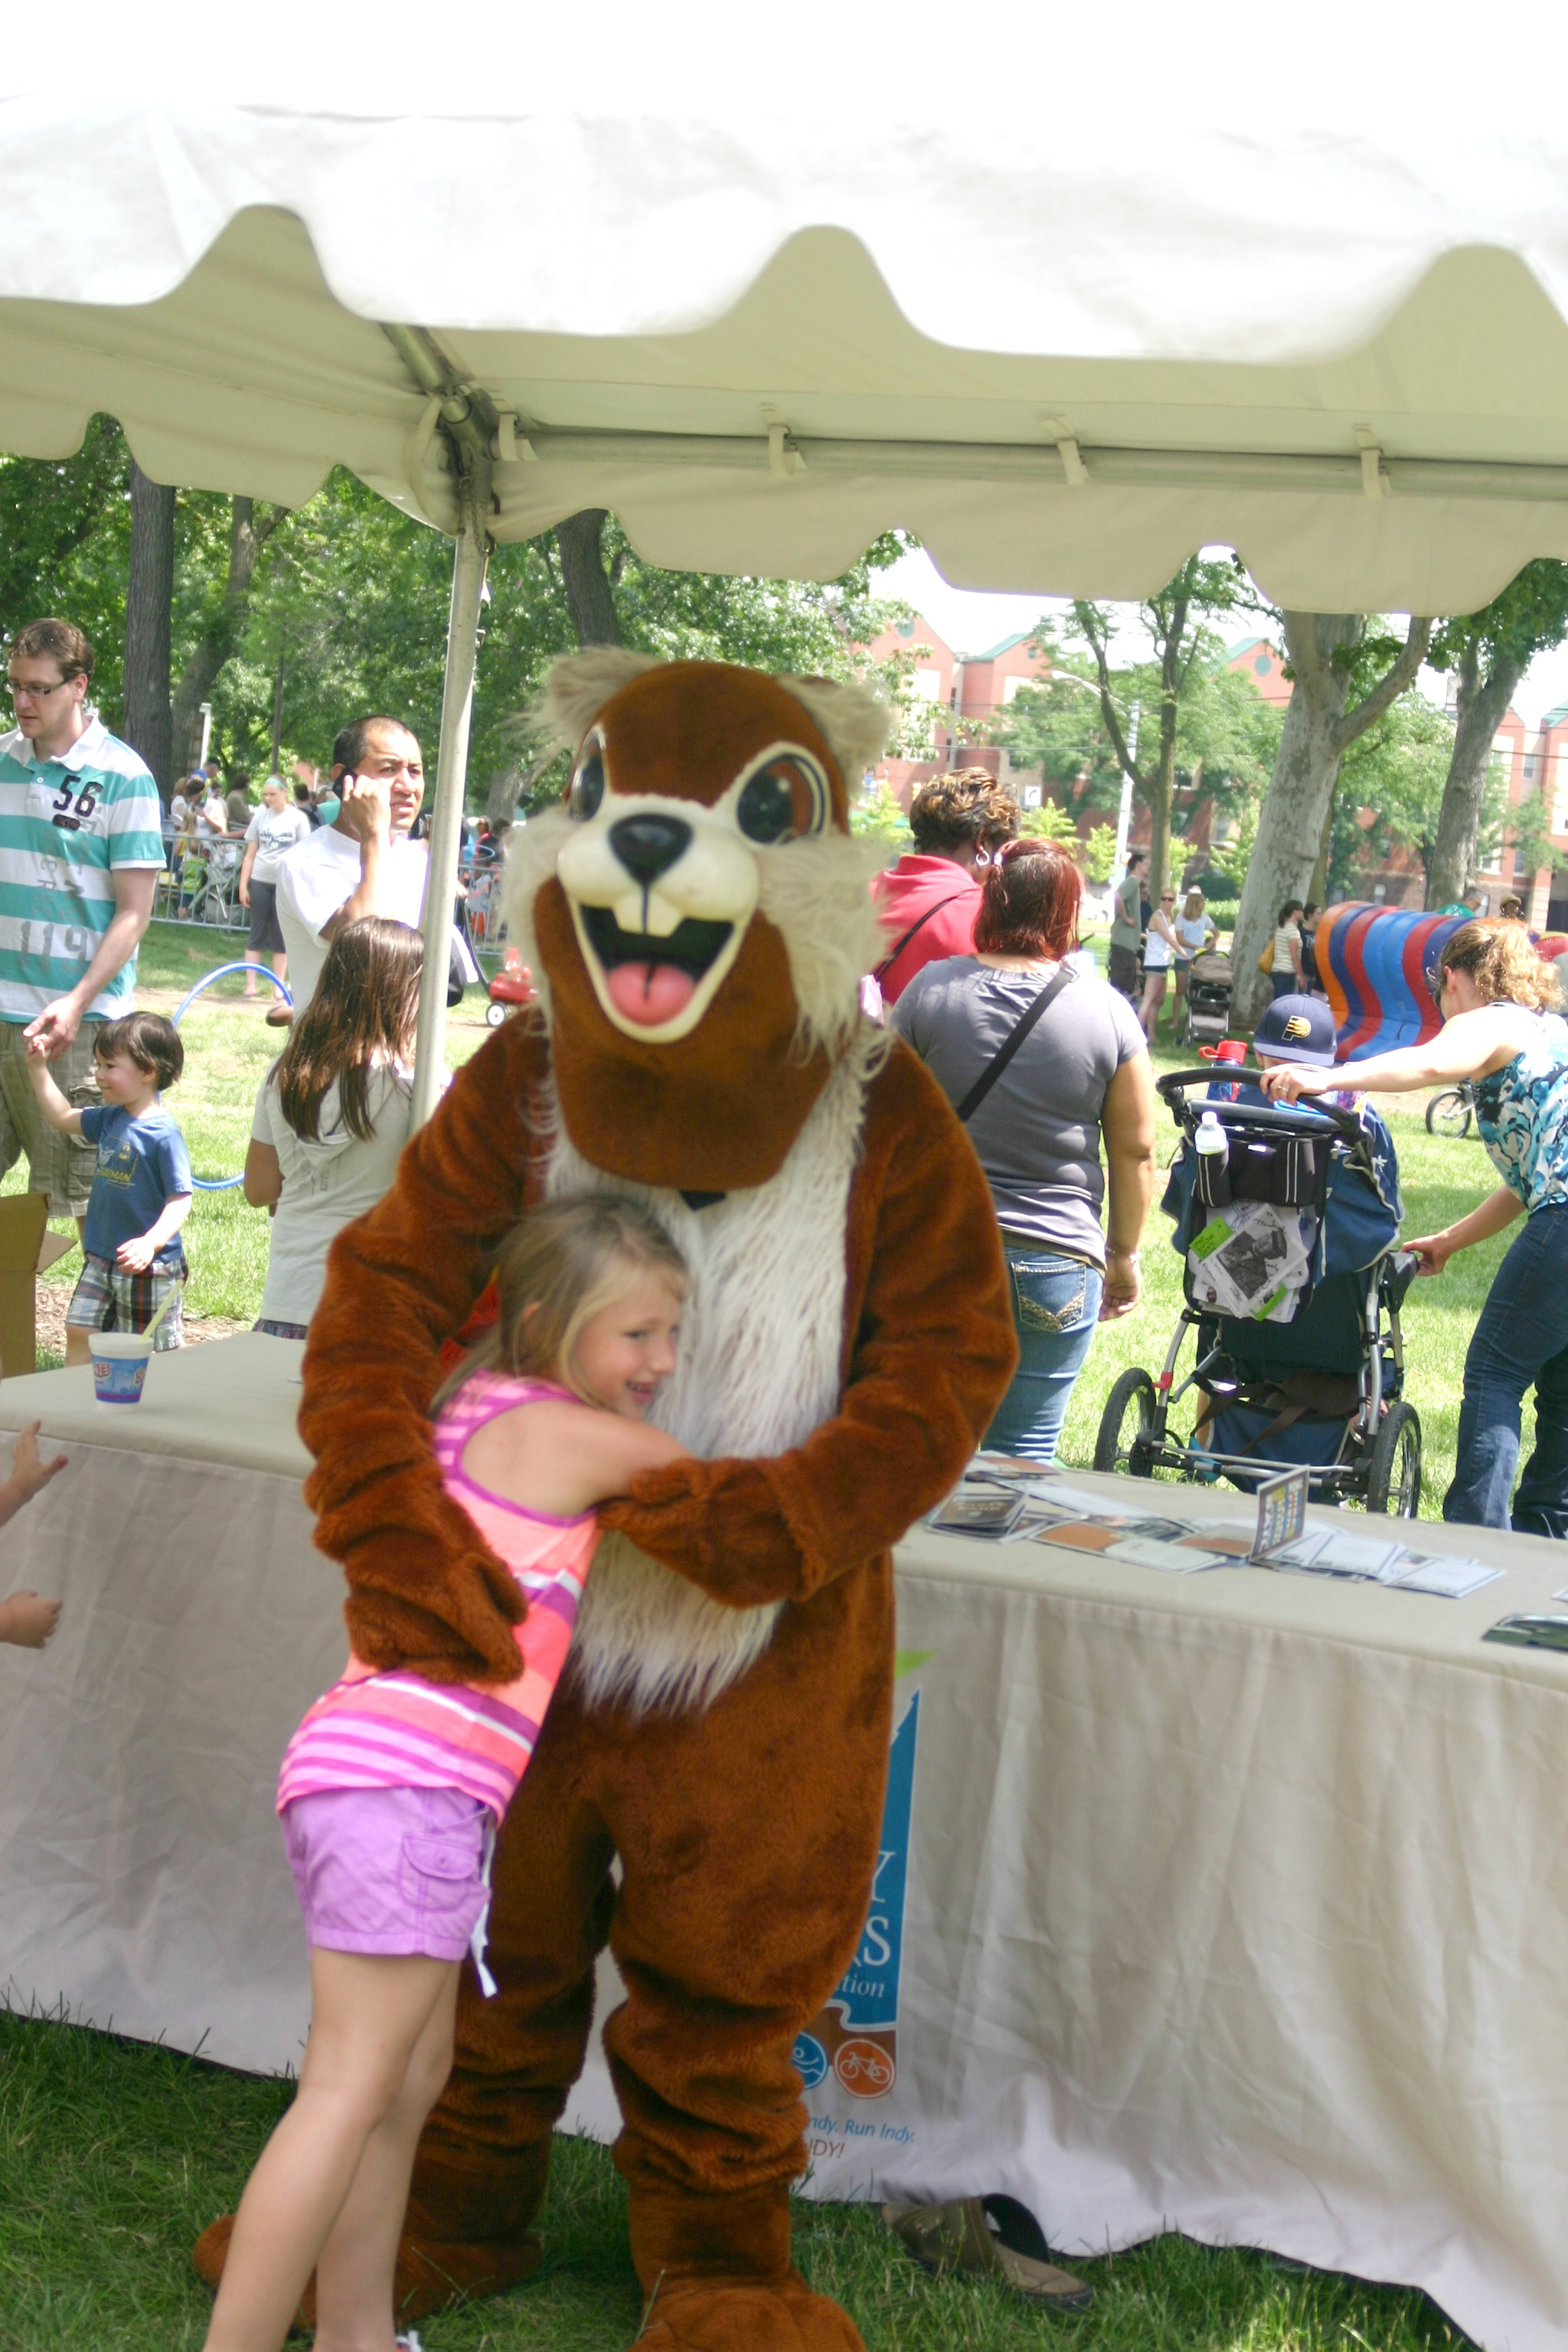 Review: PBS Kids in the Park